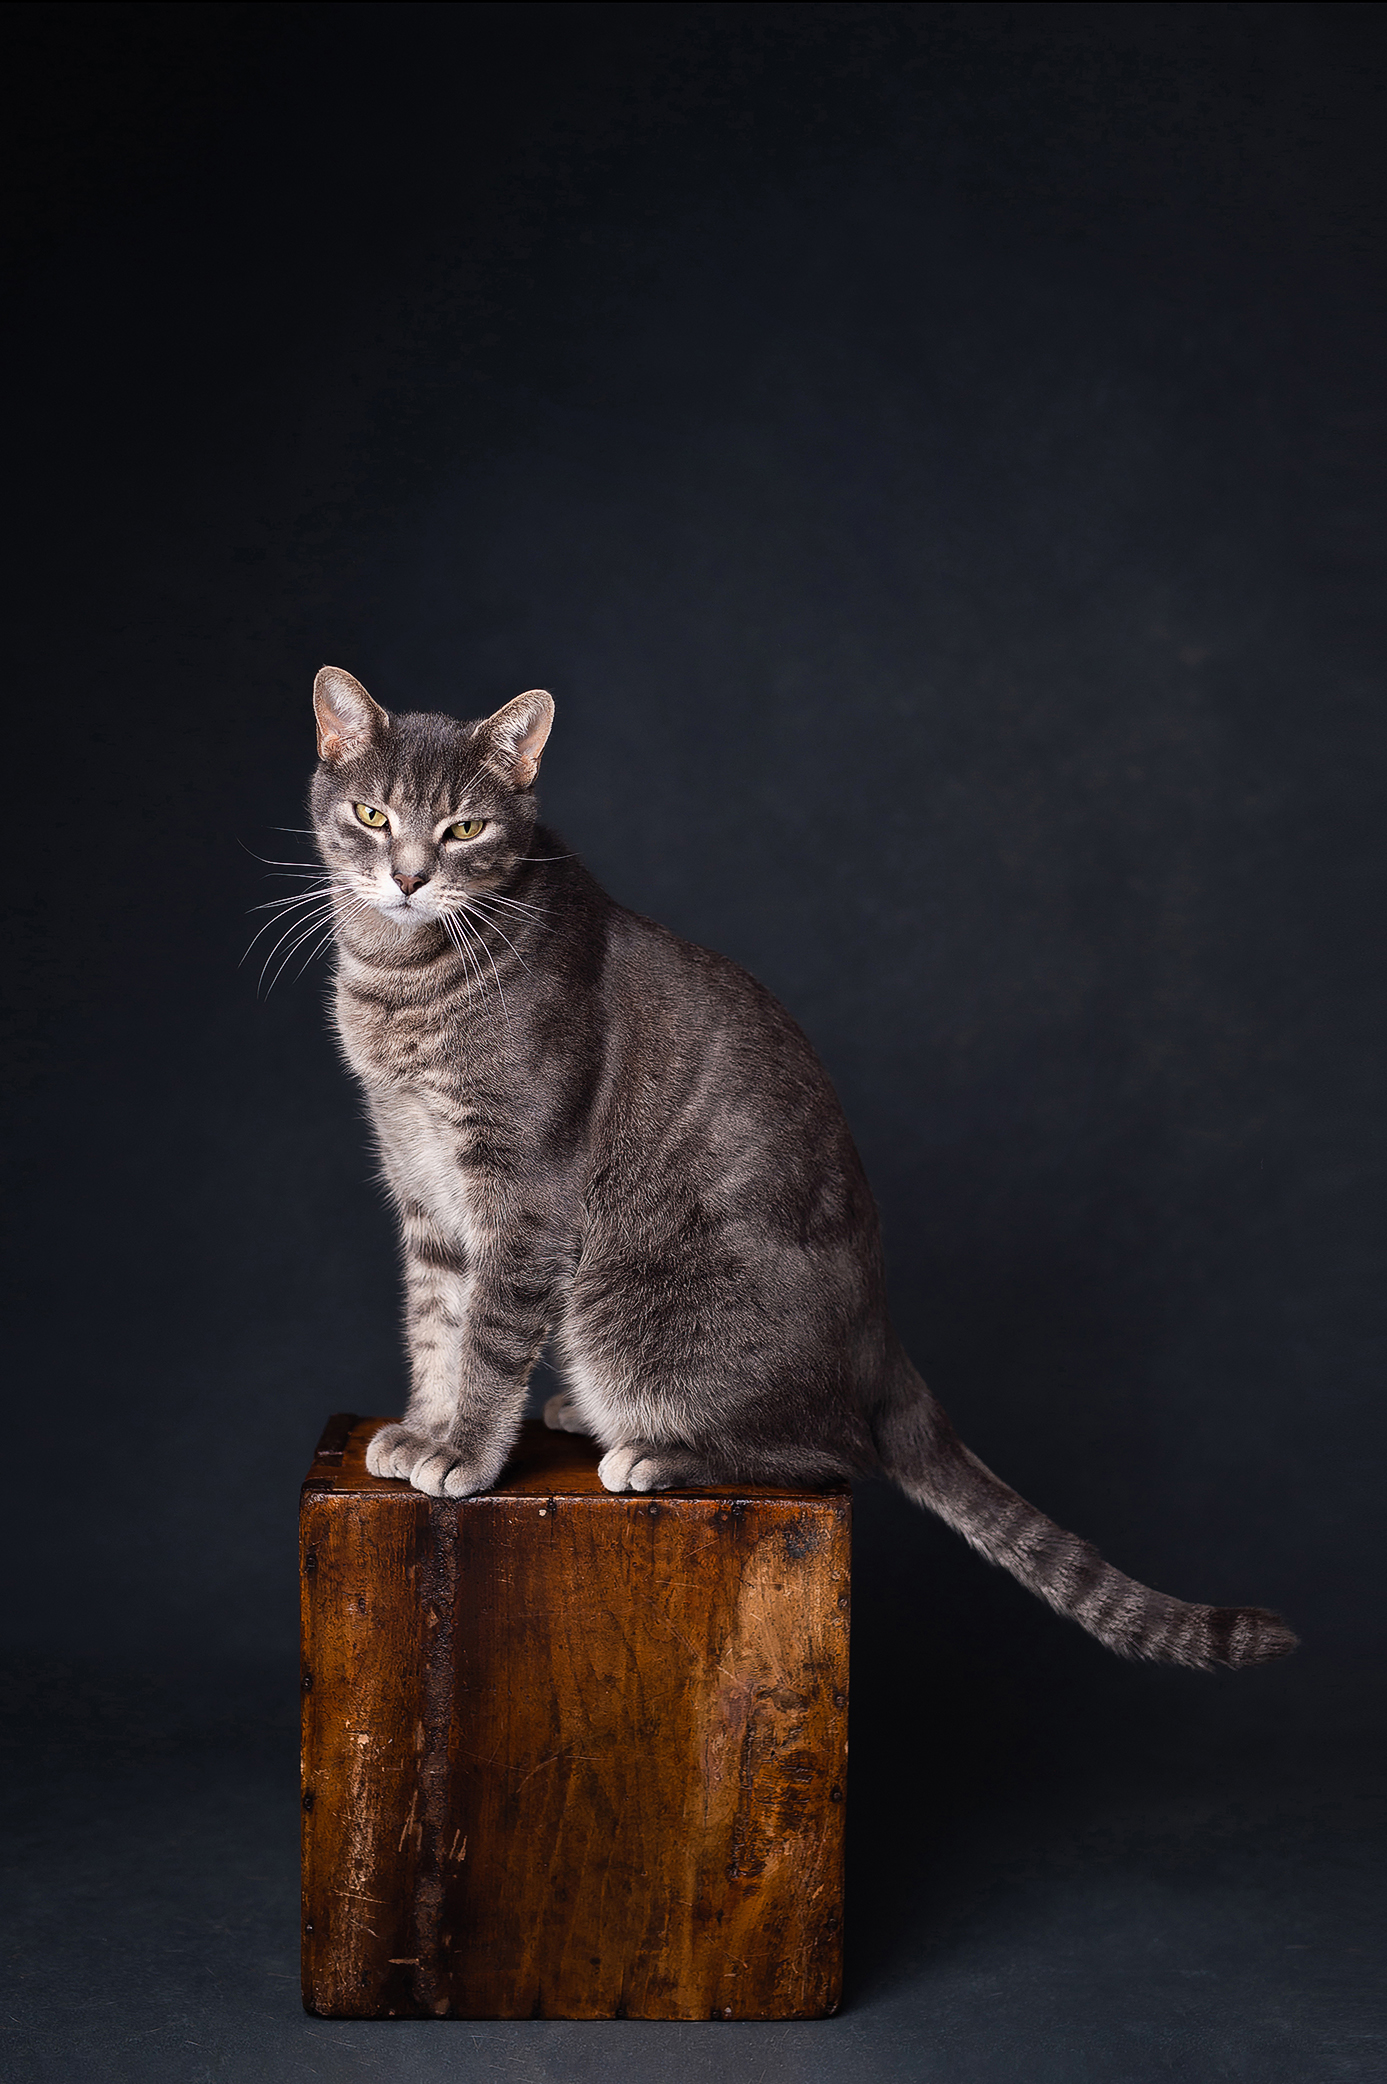 Gray cat in front of the dark background